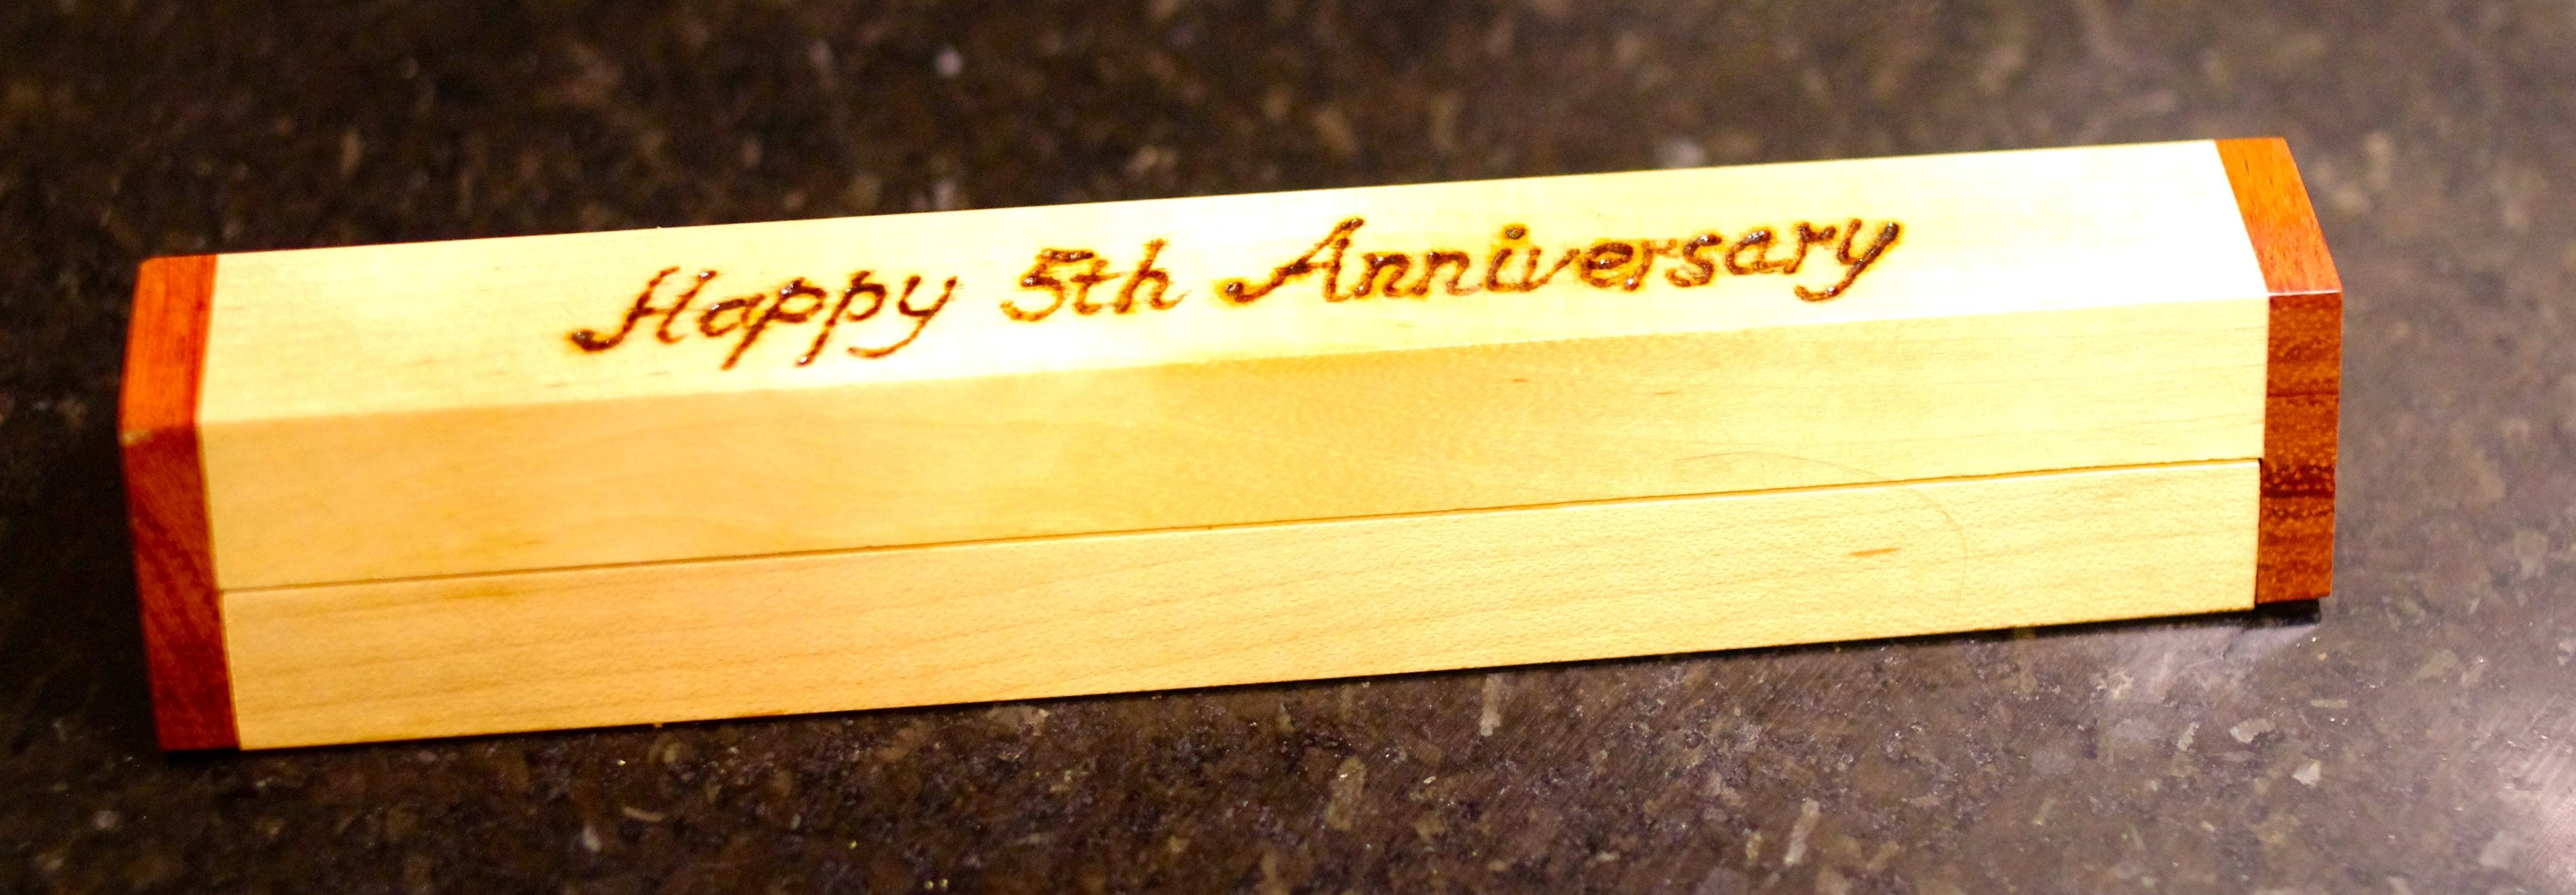 10 Fabulous 5th Anniversary Gift Ideas For Husband